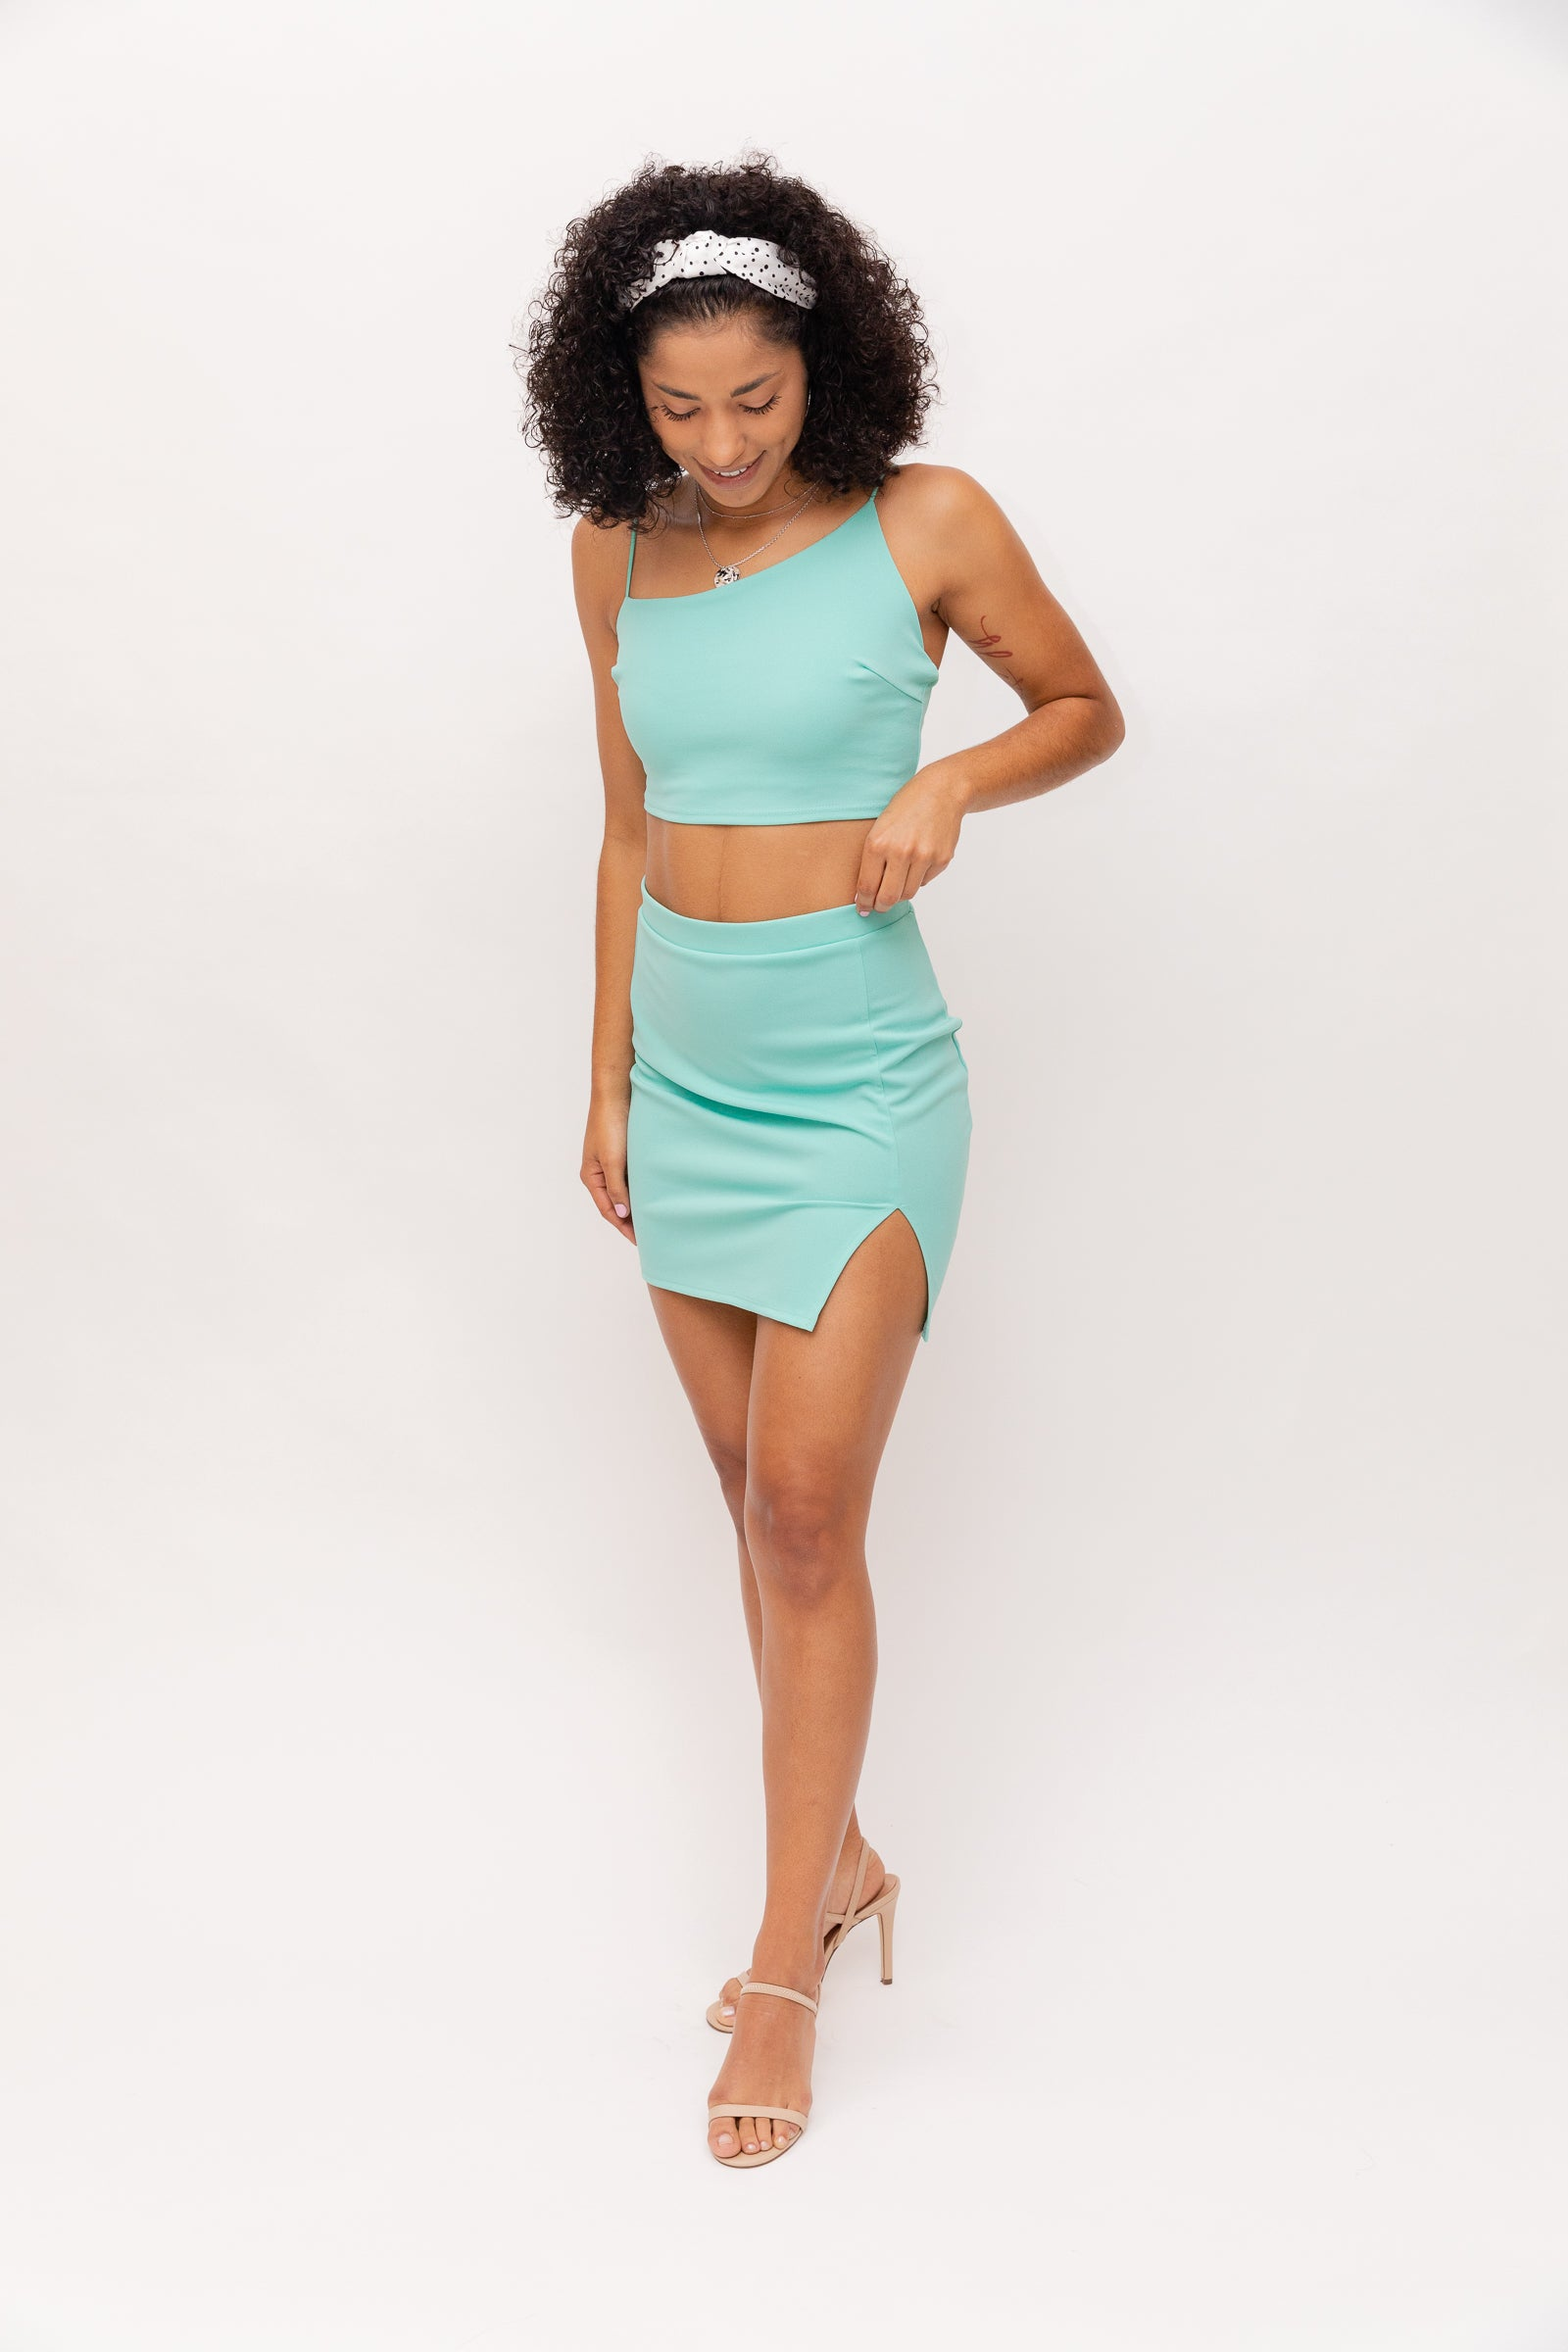 It has an elastic waistband and goes into a mini and fitted tube pencil skirt with a slit at the side. Style this spring skirt with the Landon One Strap Crop Top.